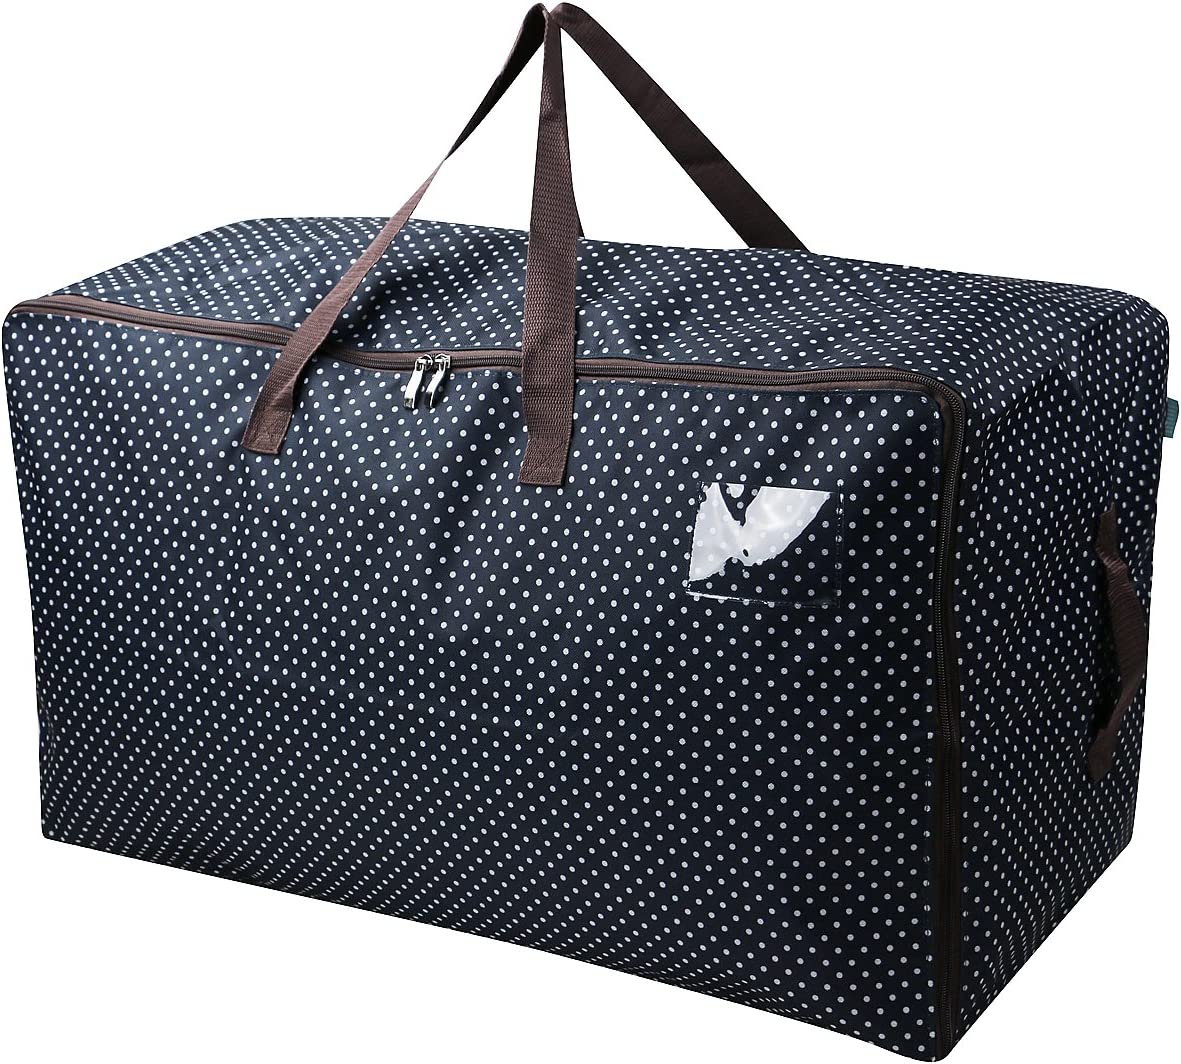 iwill CREATE OFFicial site PRO 27.5 X 16.5 Open 3-Side 13.8 Max 41% OFF Zip Bag Storage